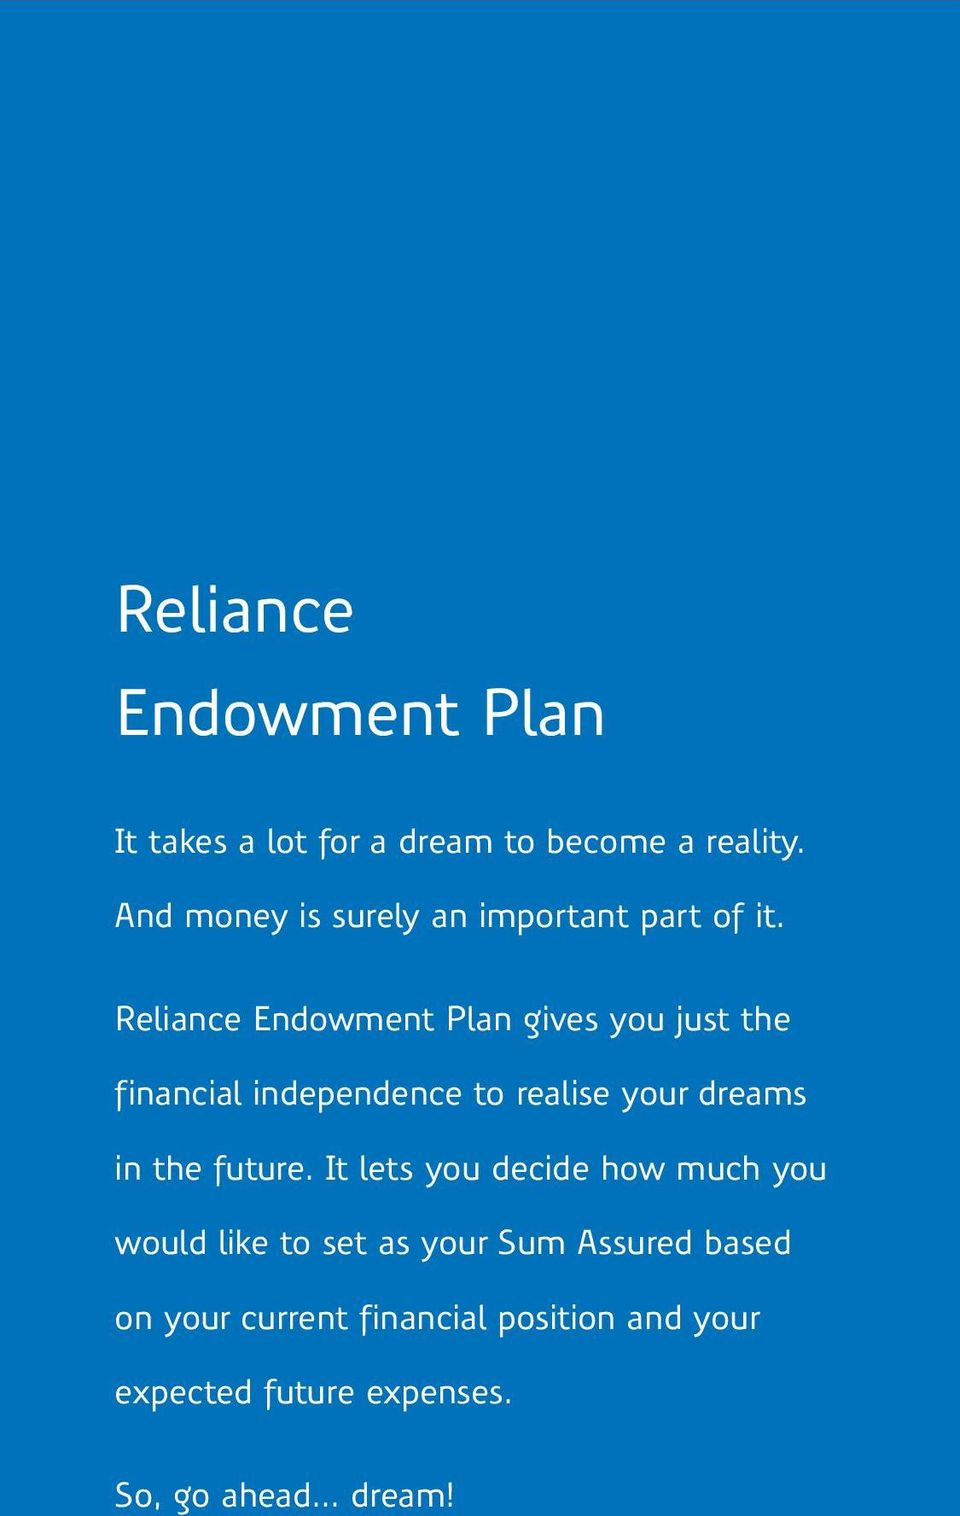 Reliance Endowment Plan gives you just the financial independence to realise your dreams in the